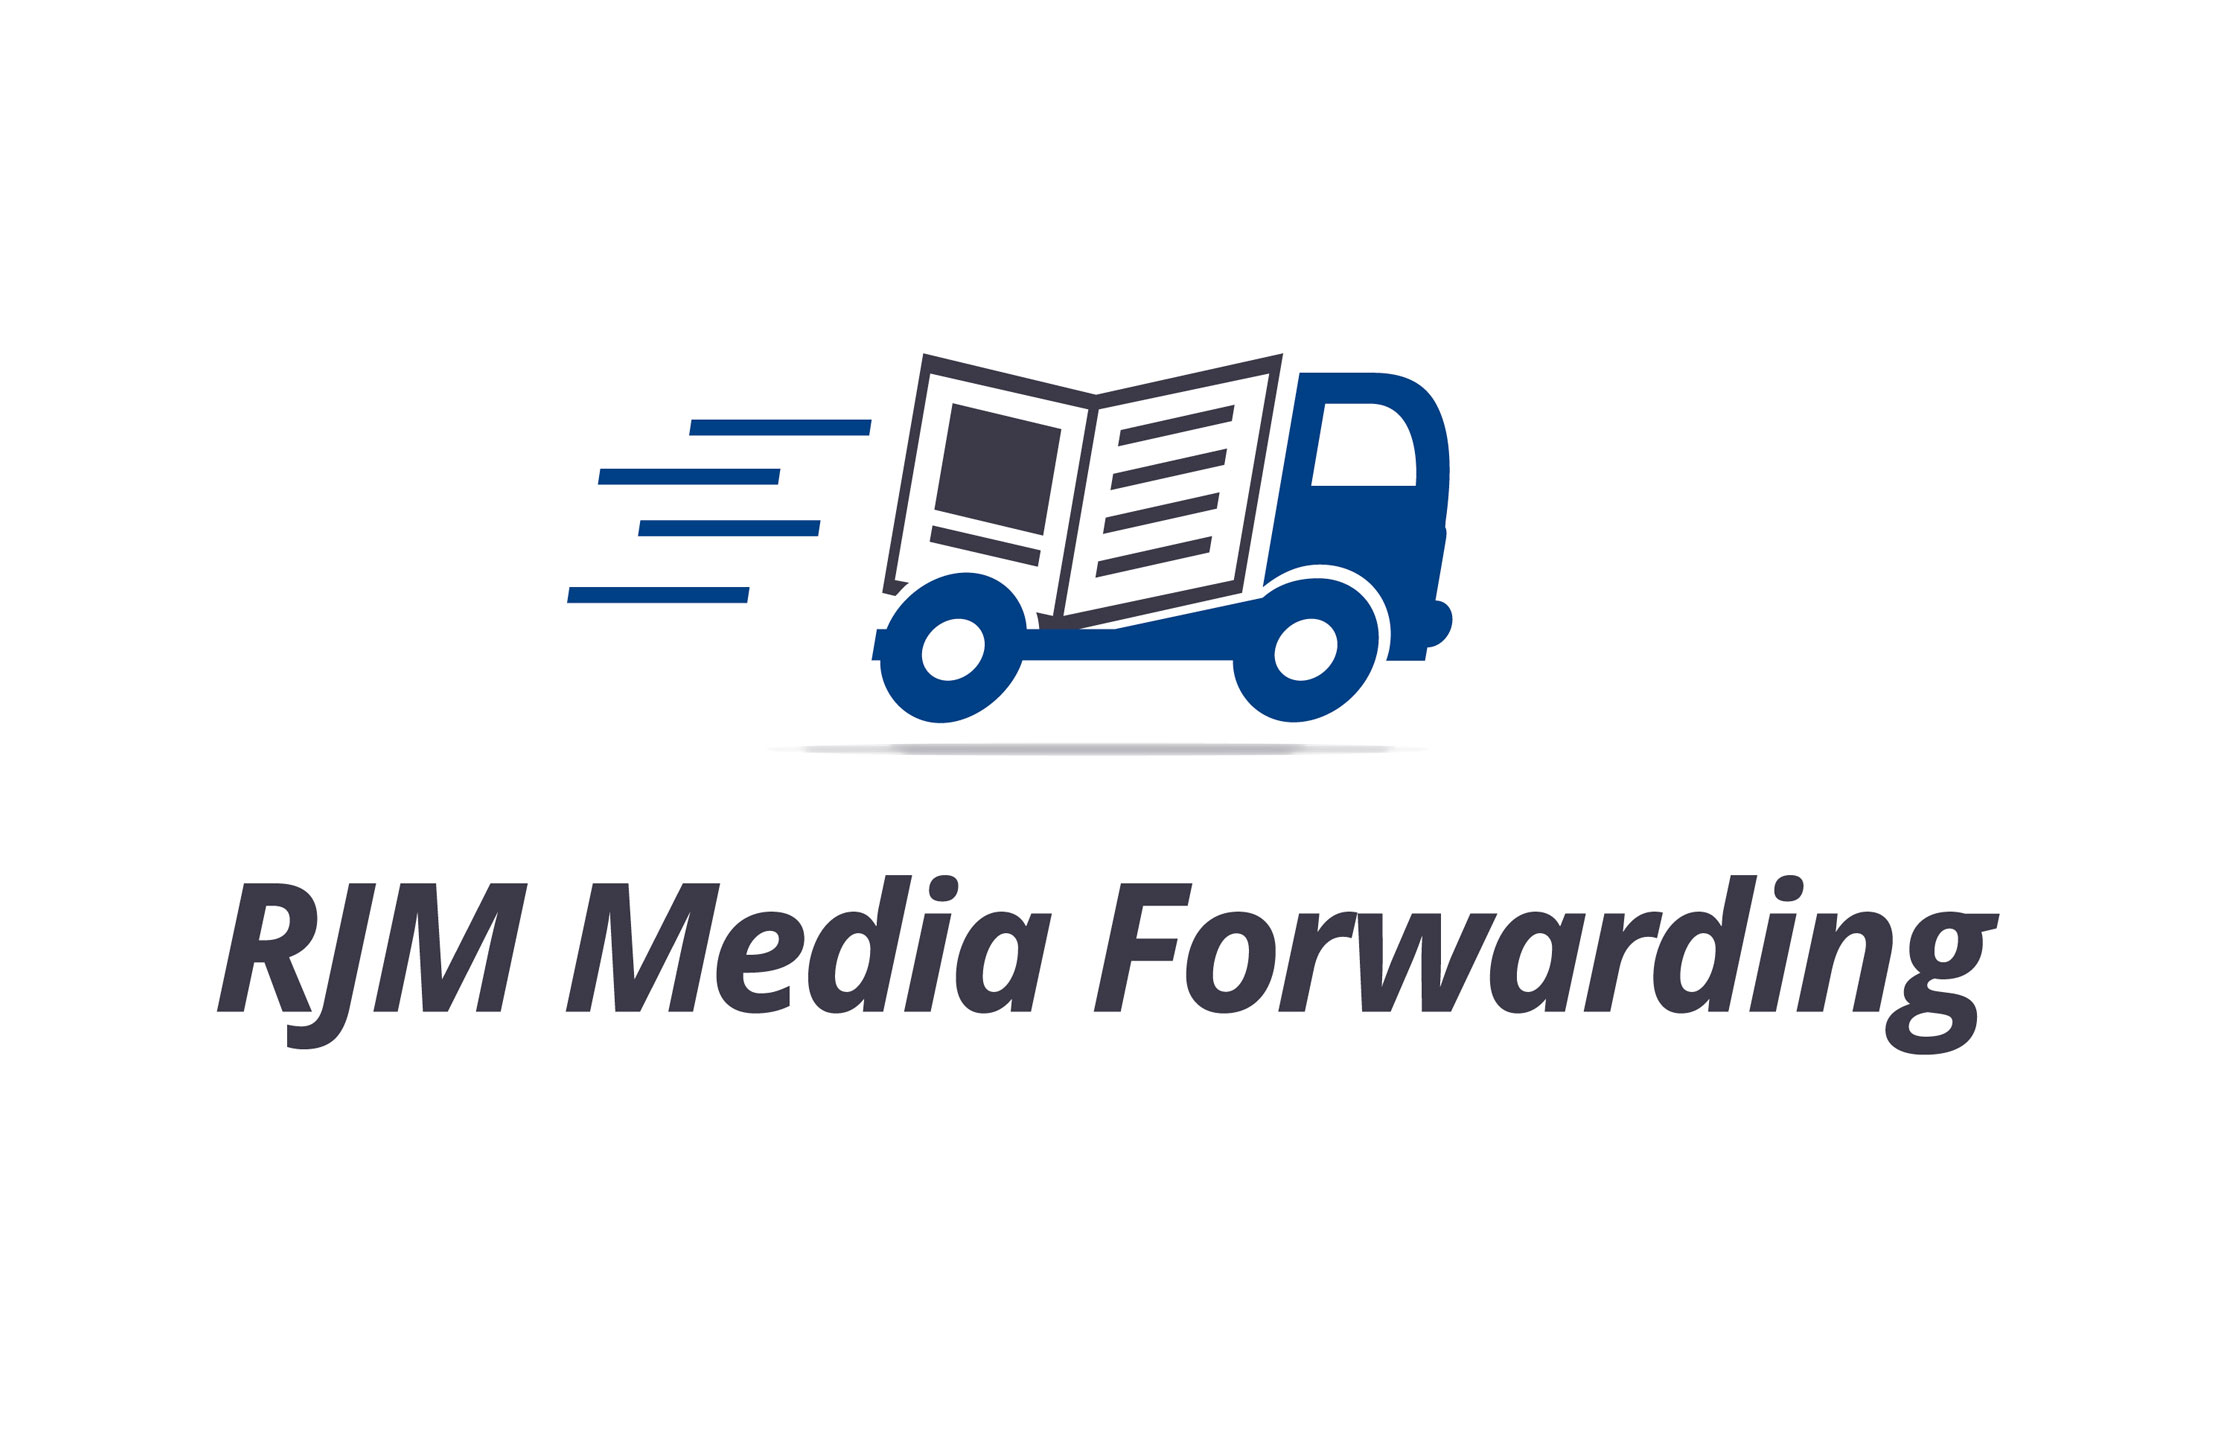 RJM Media Forwarding Logo